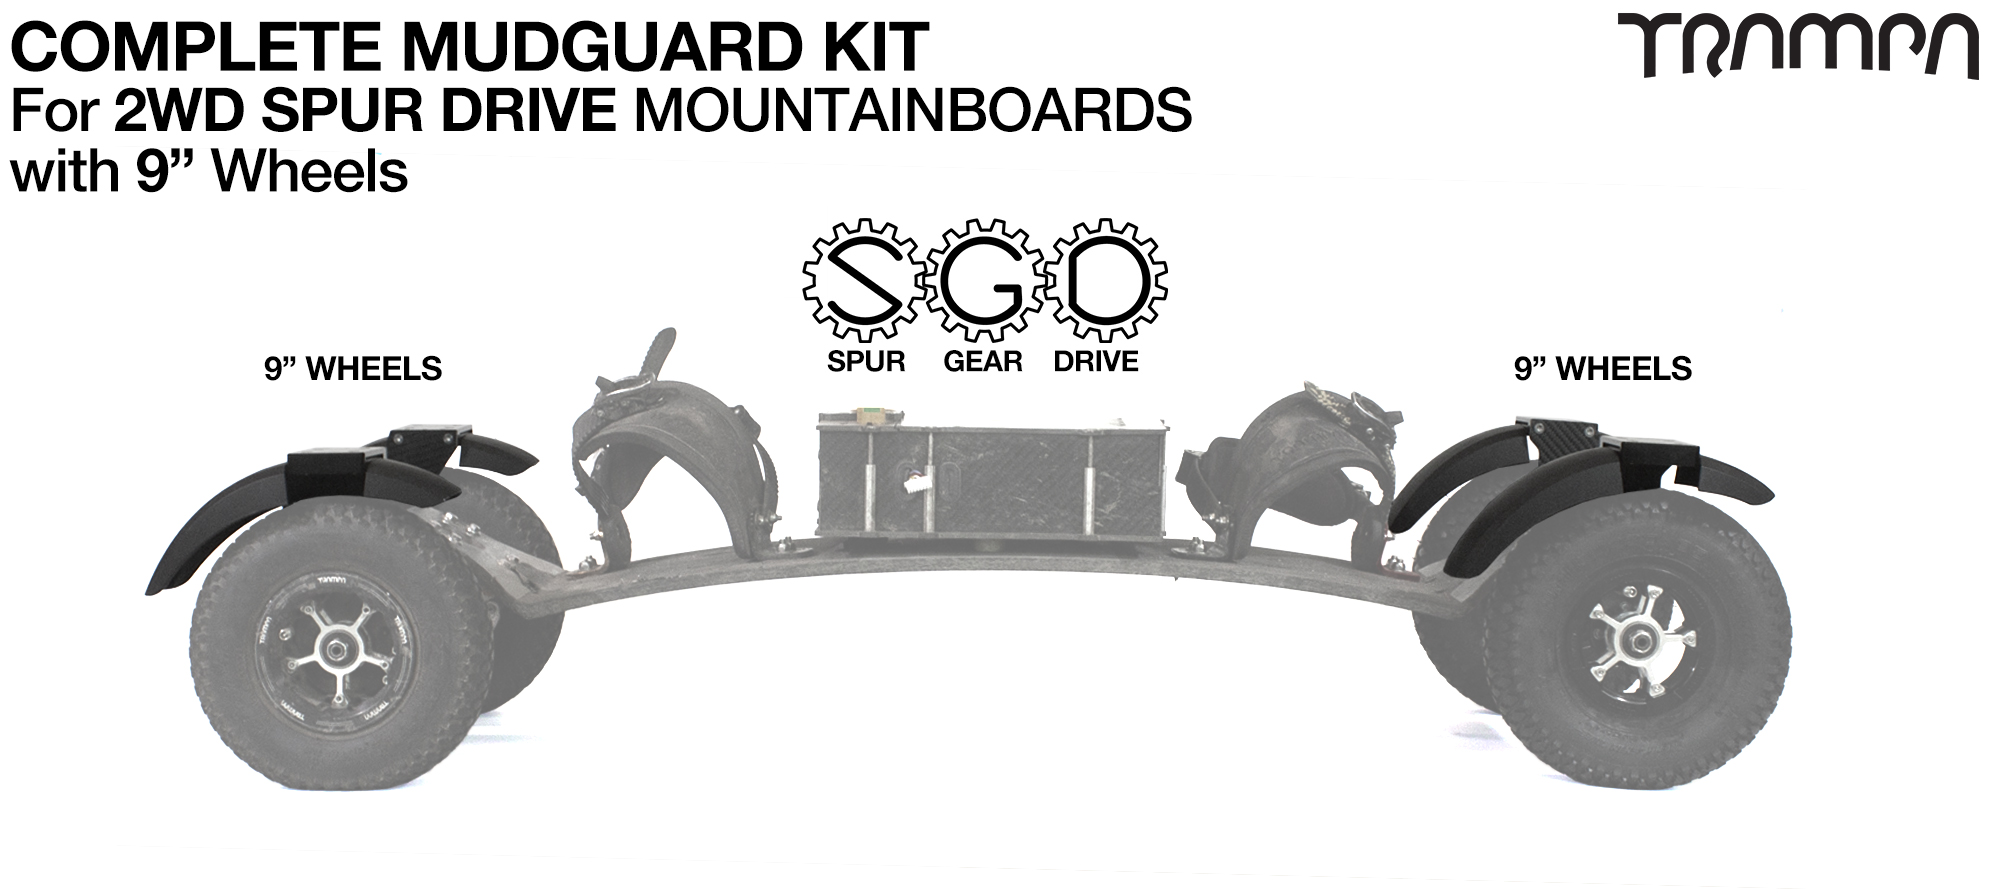 "Full Mudguard Kit for 2WD SPUR GEAR DRIVE Mountainboards - 9"" Wheels All round"